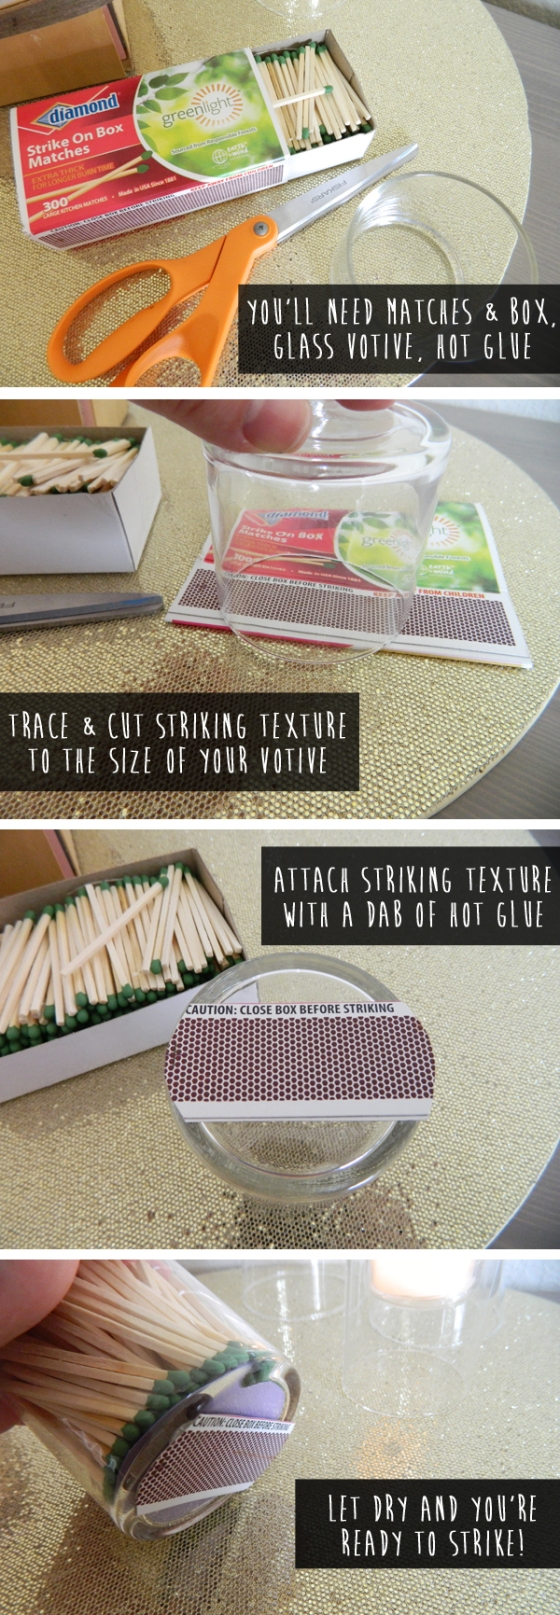 diy-match-strike-votive-tutorial-2